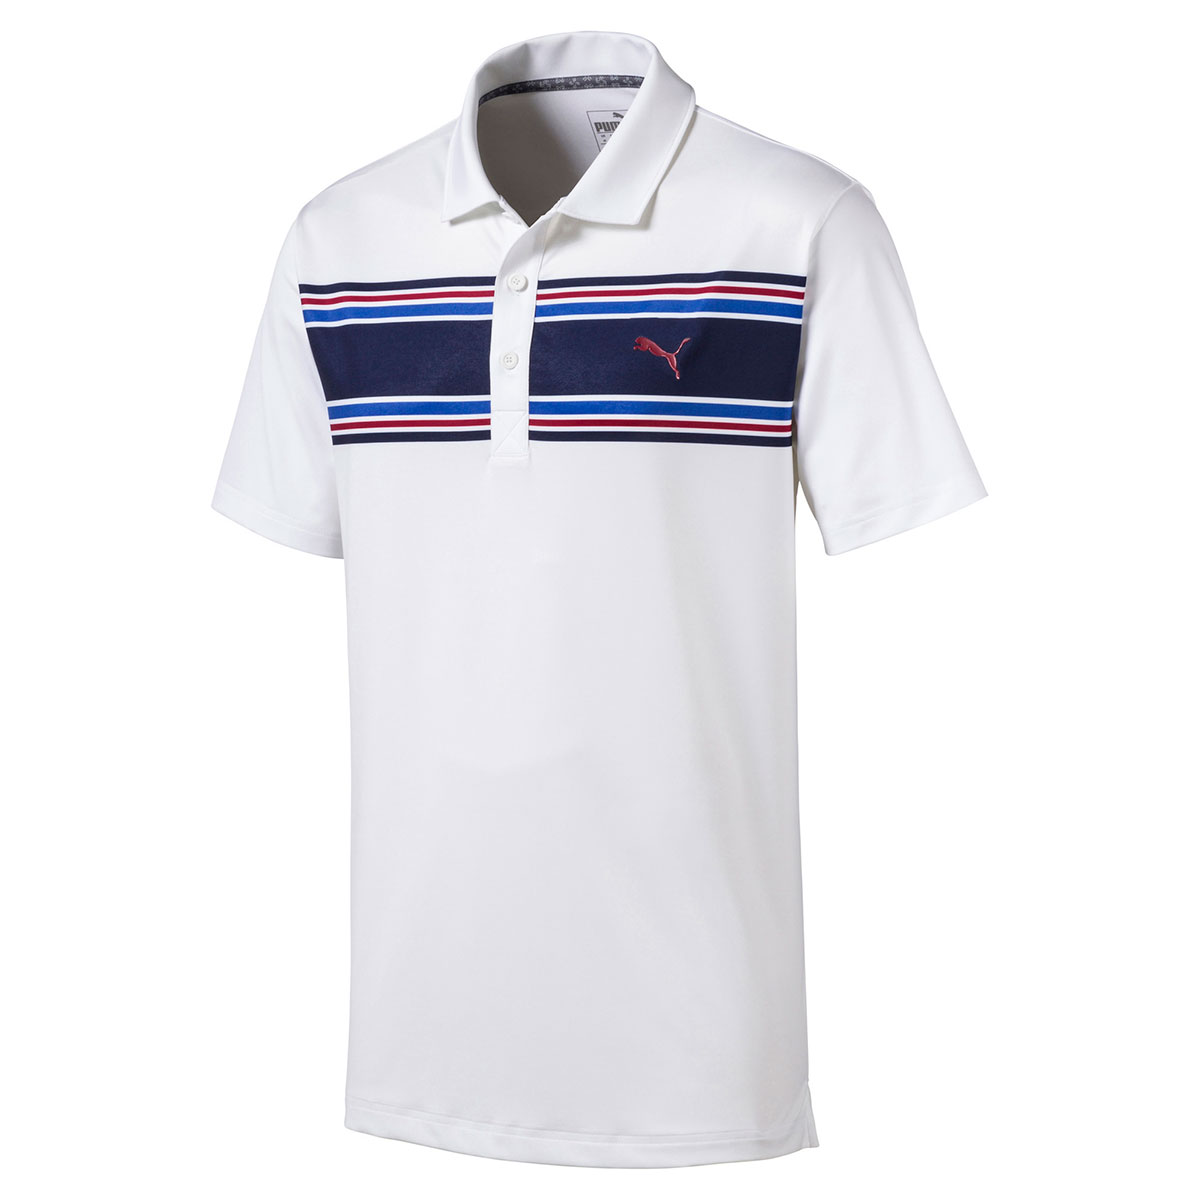 sold worldwide factory authentic performance sportswear PUMA Golf Montauk Polo Shirt from american golf